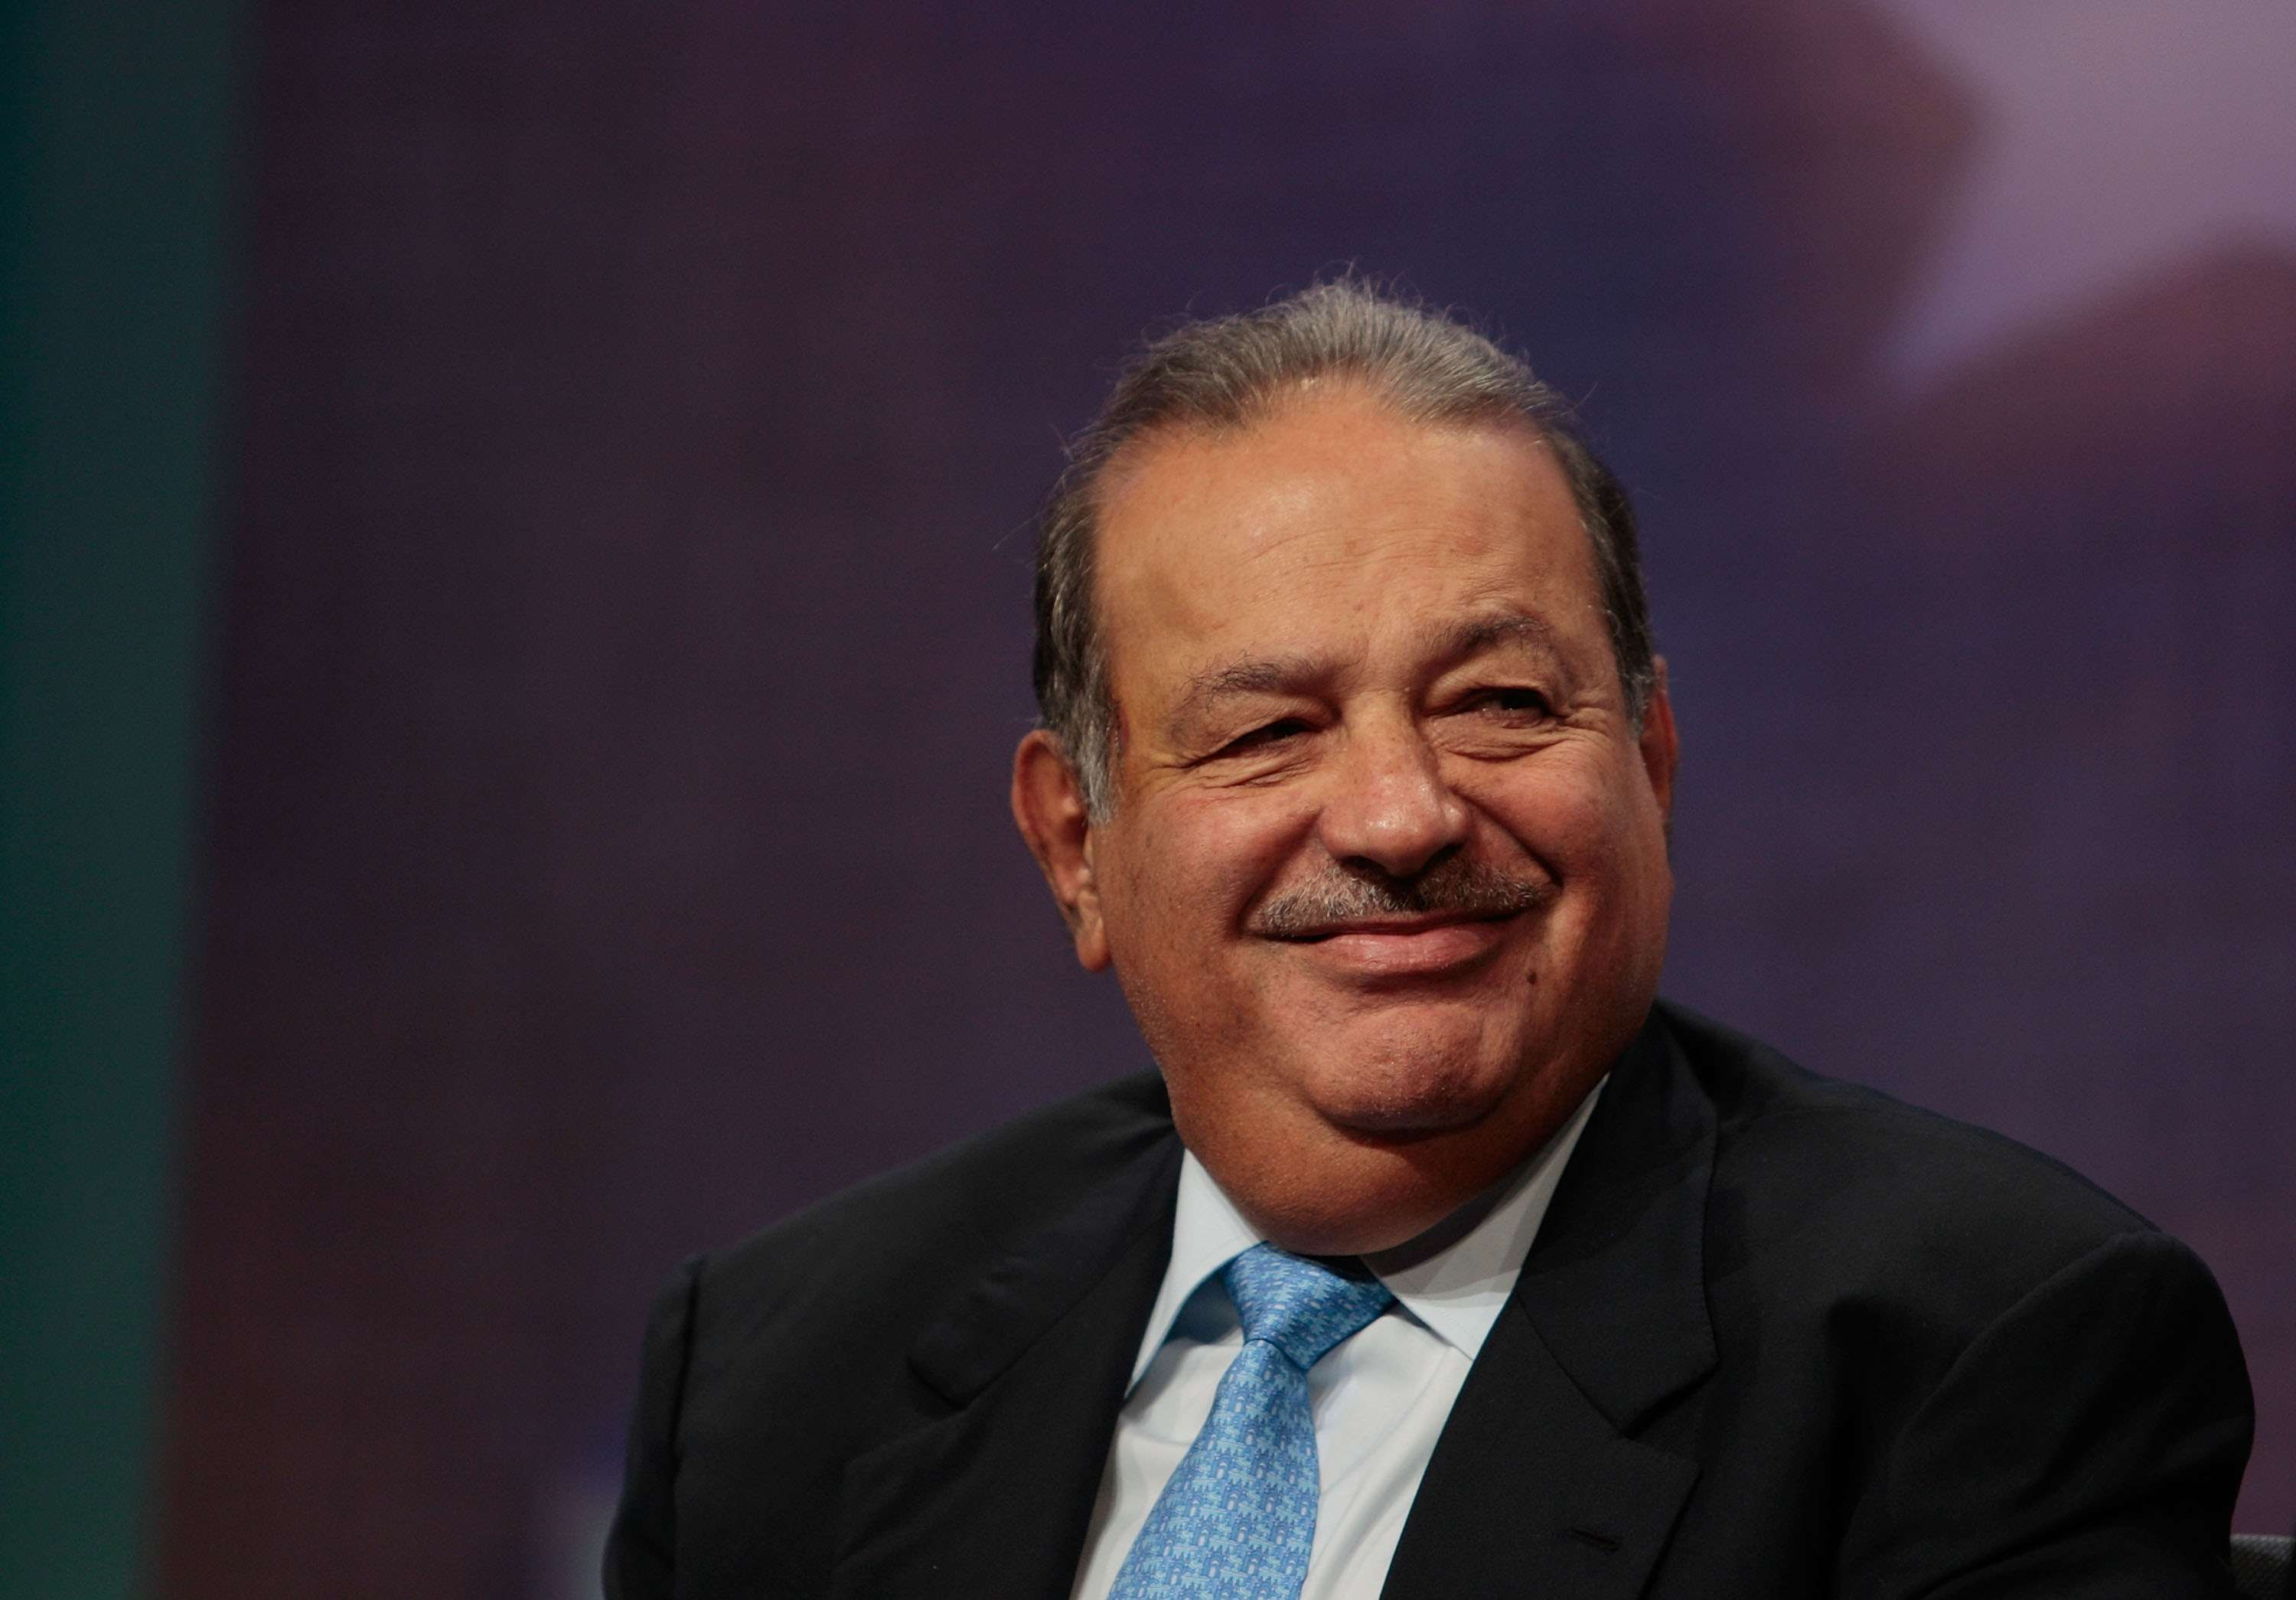 Carlos Slim cumple 75 años con una fortuna de 73 mil 600 mdd. Foto: Getty Images